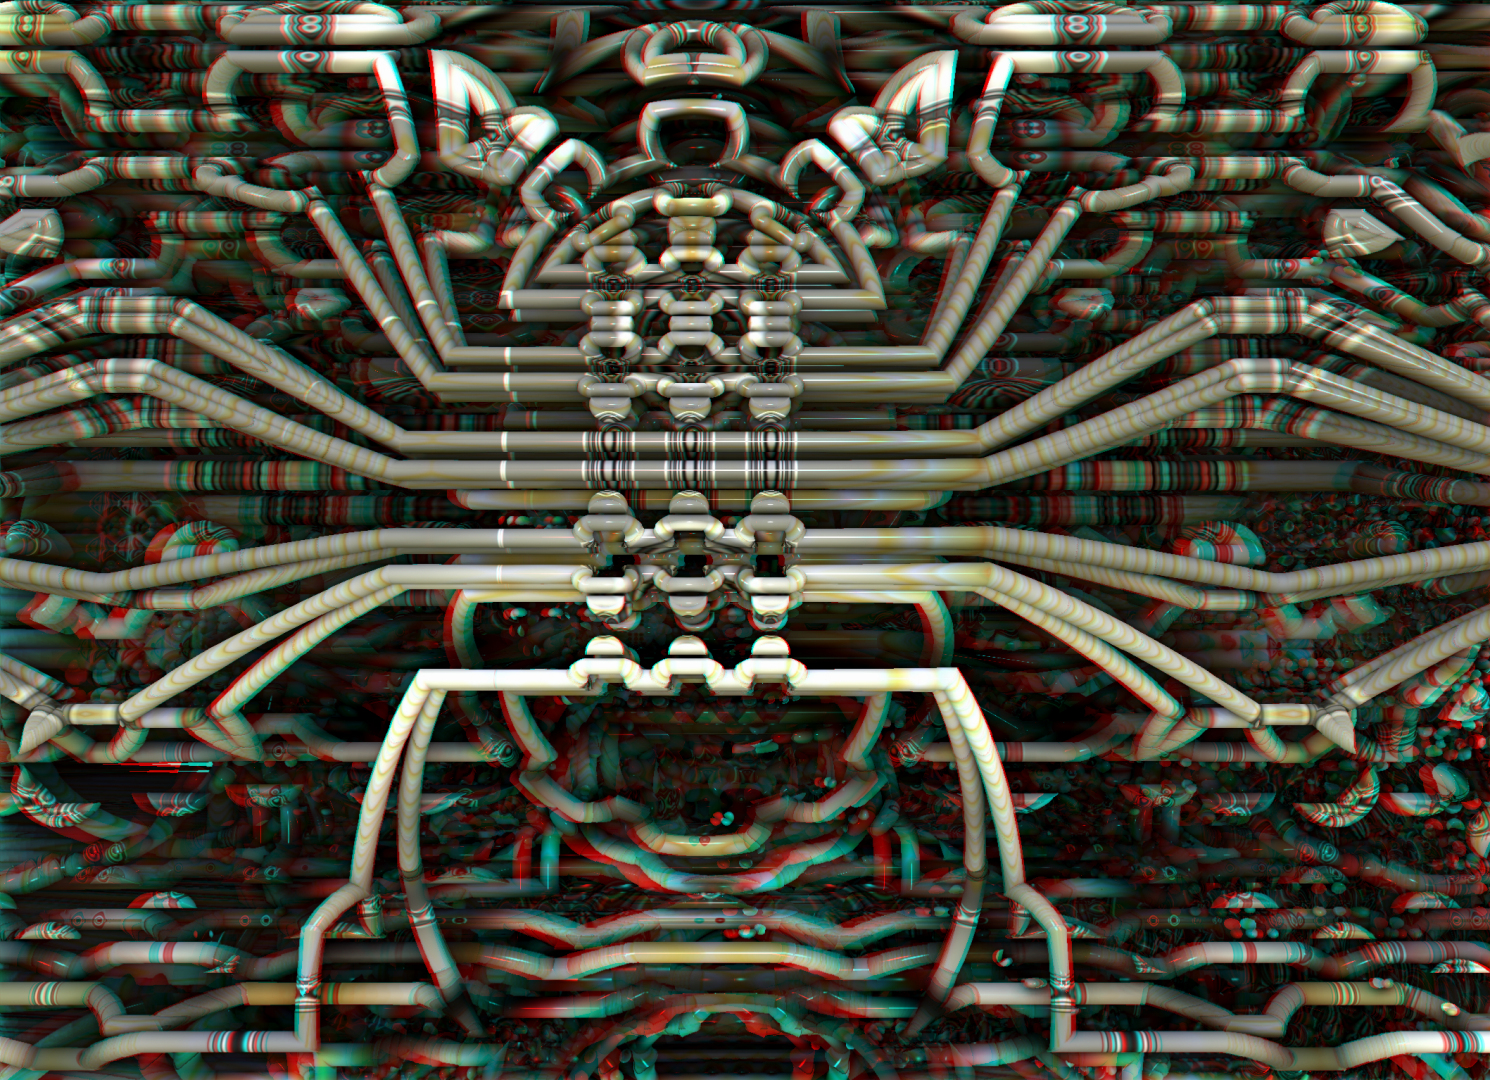 Color Coded Conduit Stereo by DDDPhoto